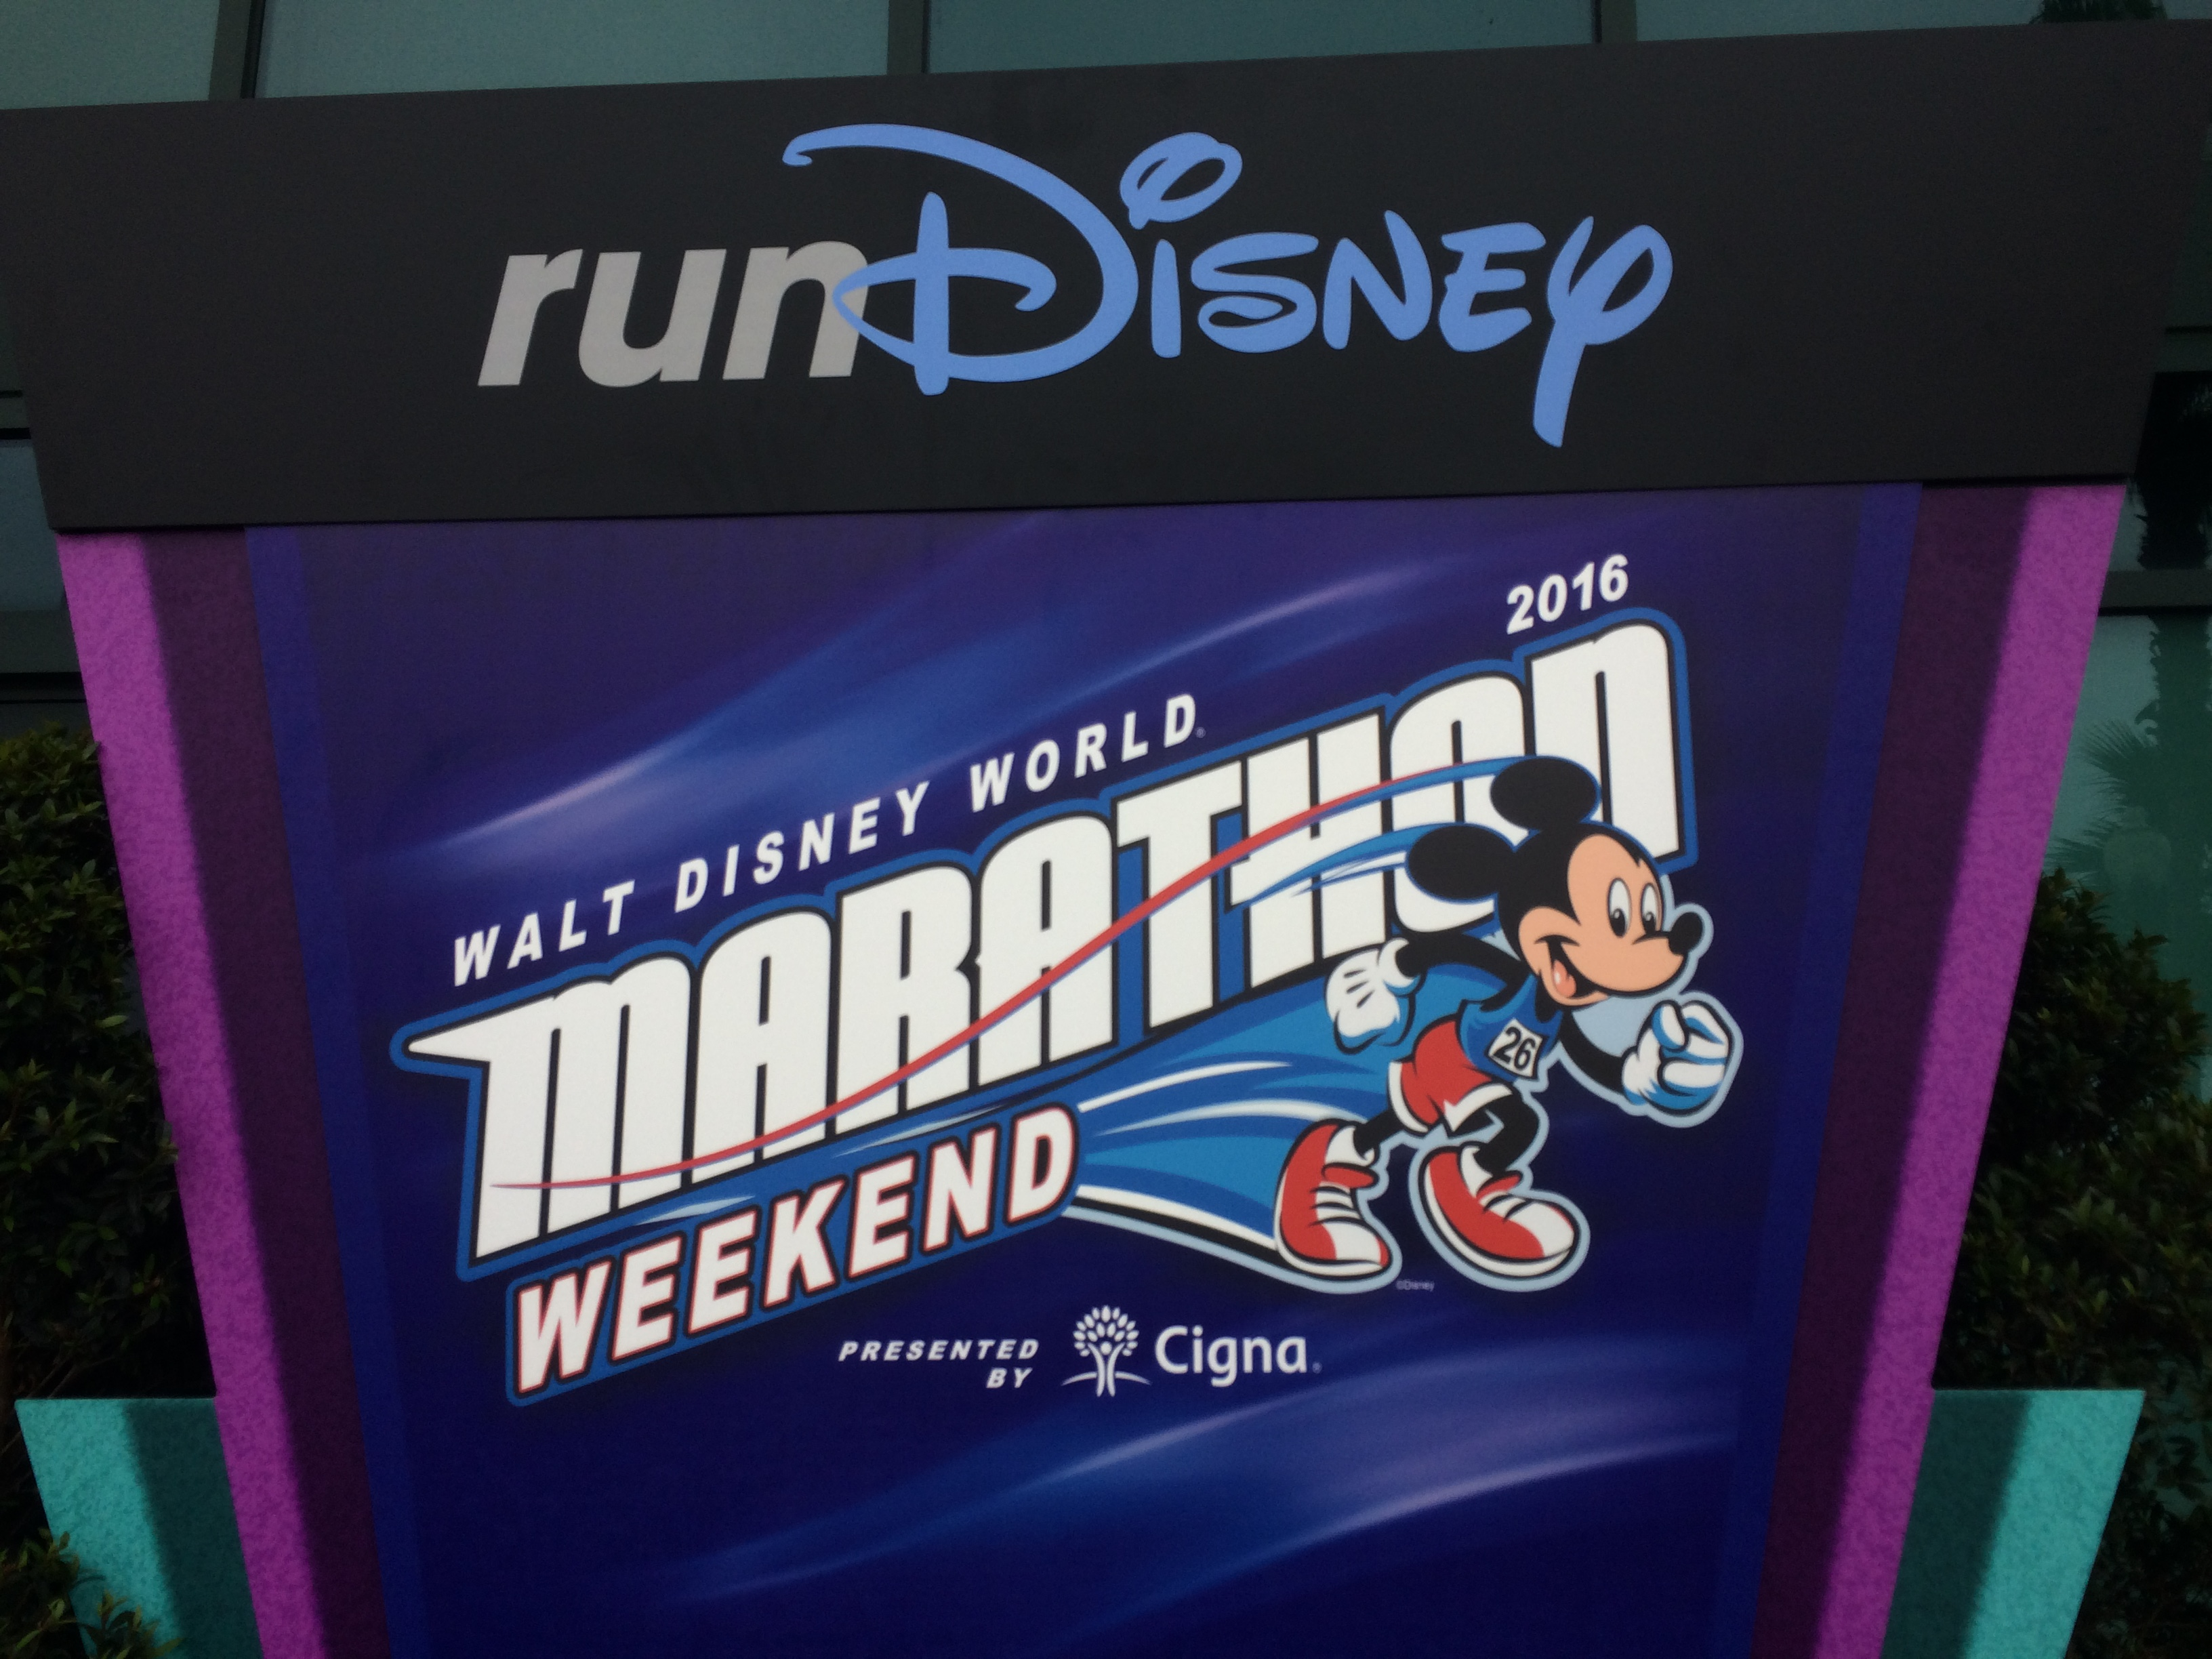 Final Thoughts: 2016 WDW Marathon Weekend